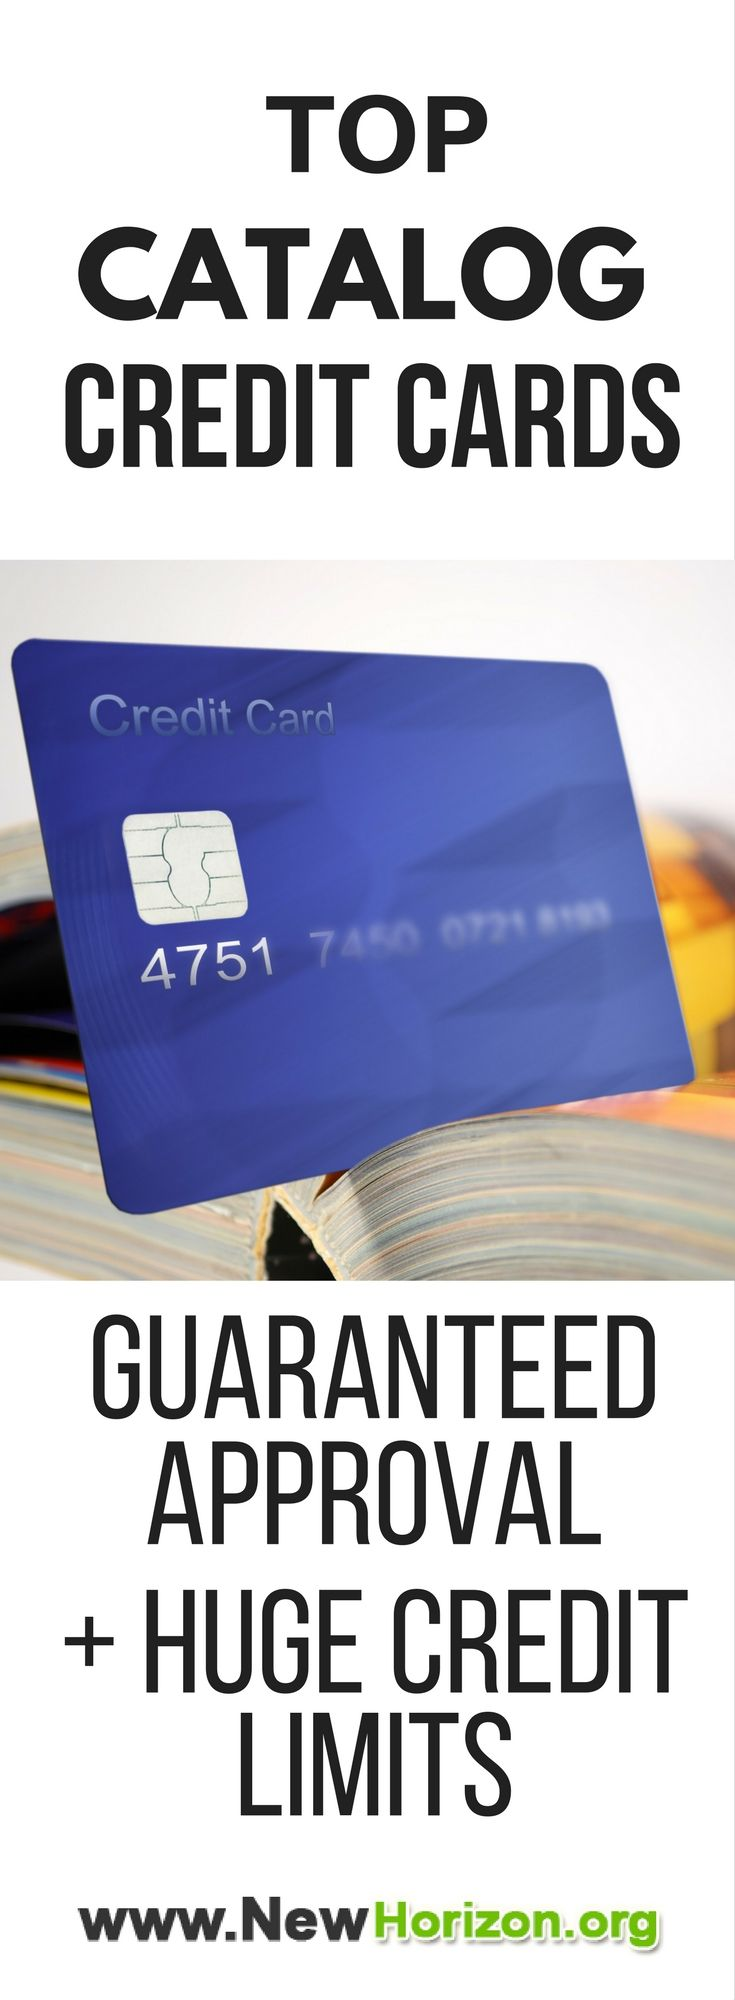 Merchandise Cards Catalog Credit Cards Secure Credit Card Consolidate Credit Card Debt Credit Card Consolidation